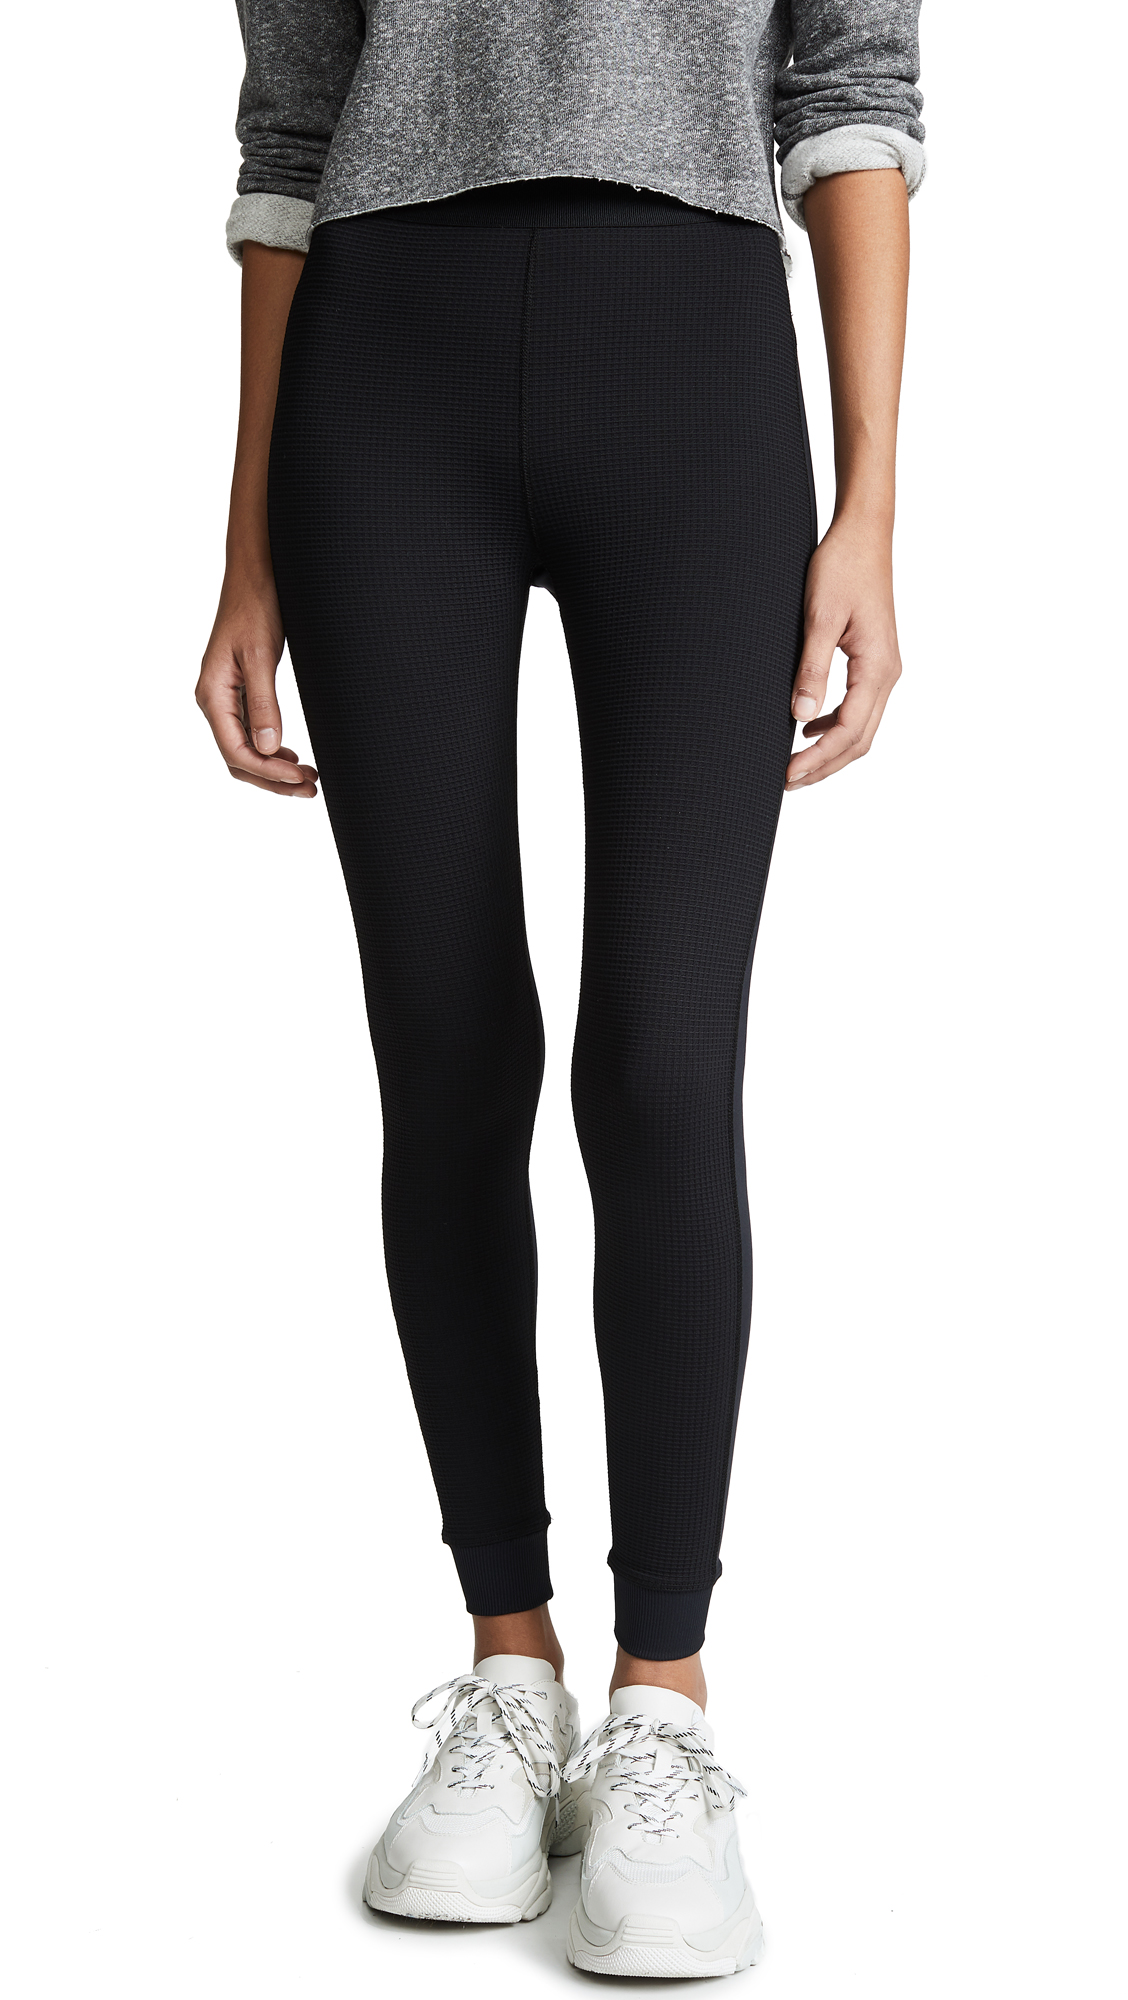 ALALA Thermal Tight Leggings